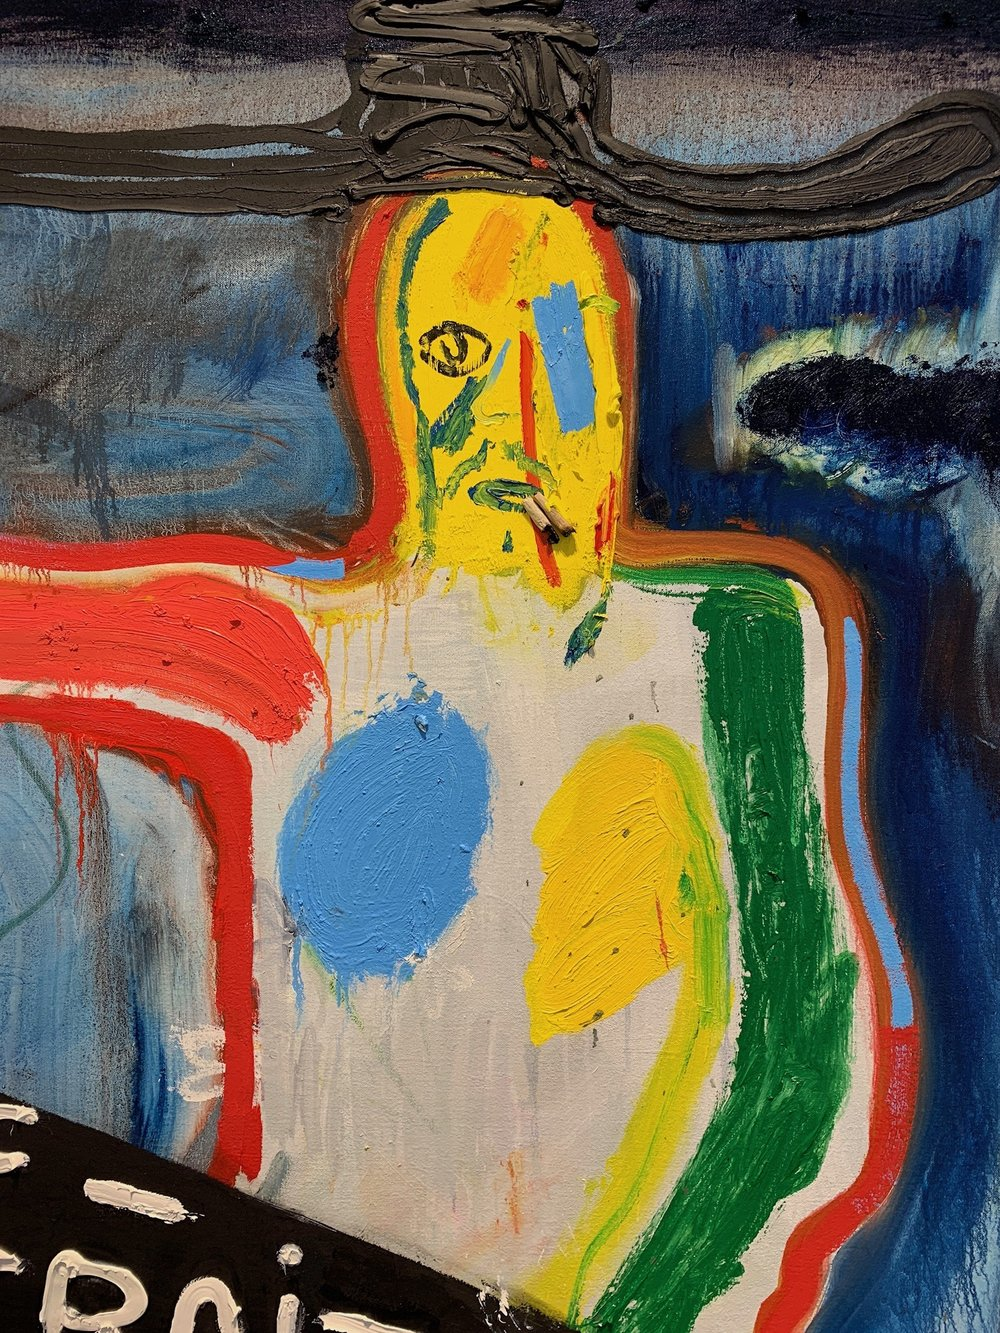 """Detail, """"Self-Portrait at Larry's"""" by Spencer Sweeney. Photographed at Gagosian Gallery by myself."""